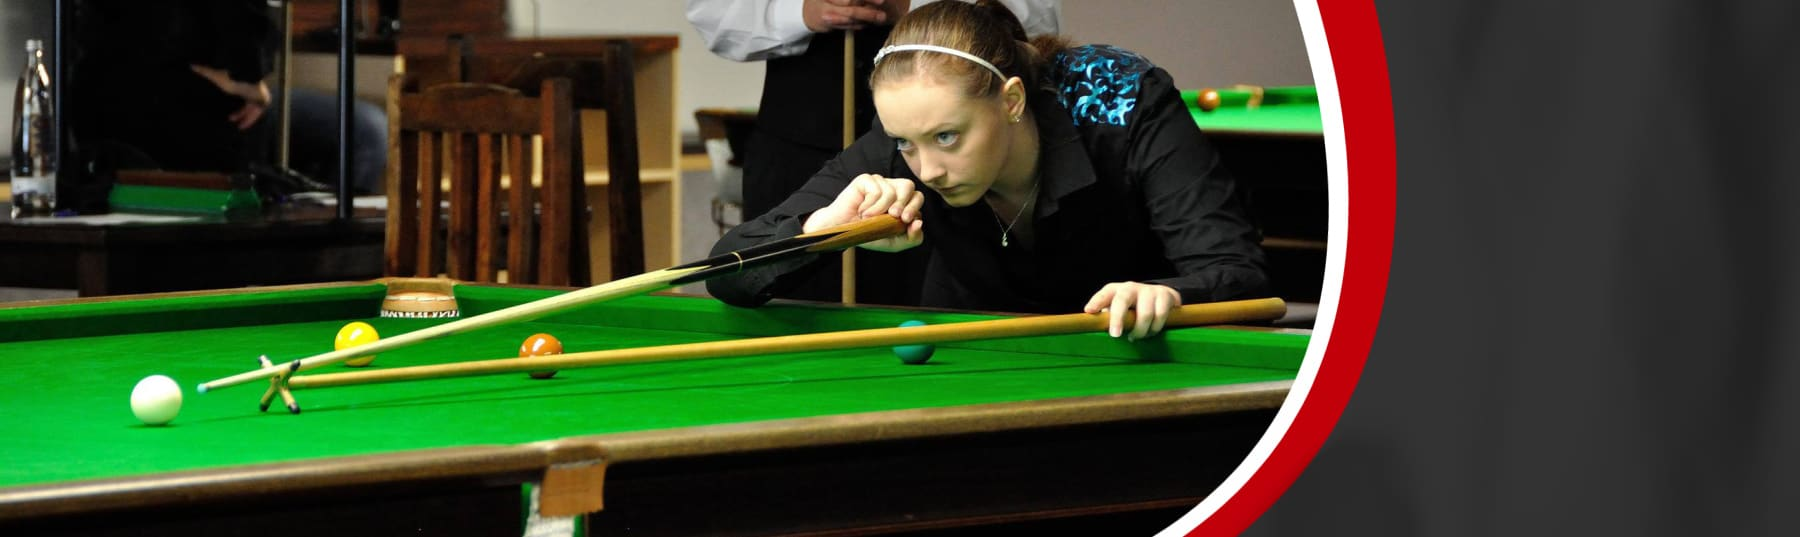 Snooker champion pursues new career.